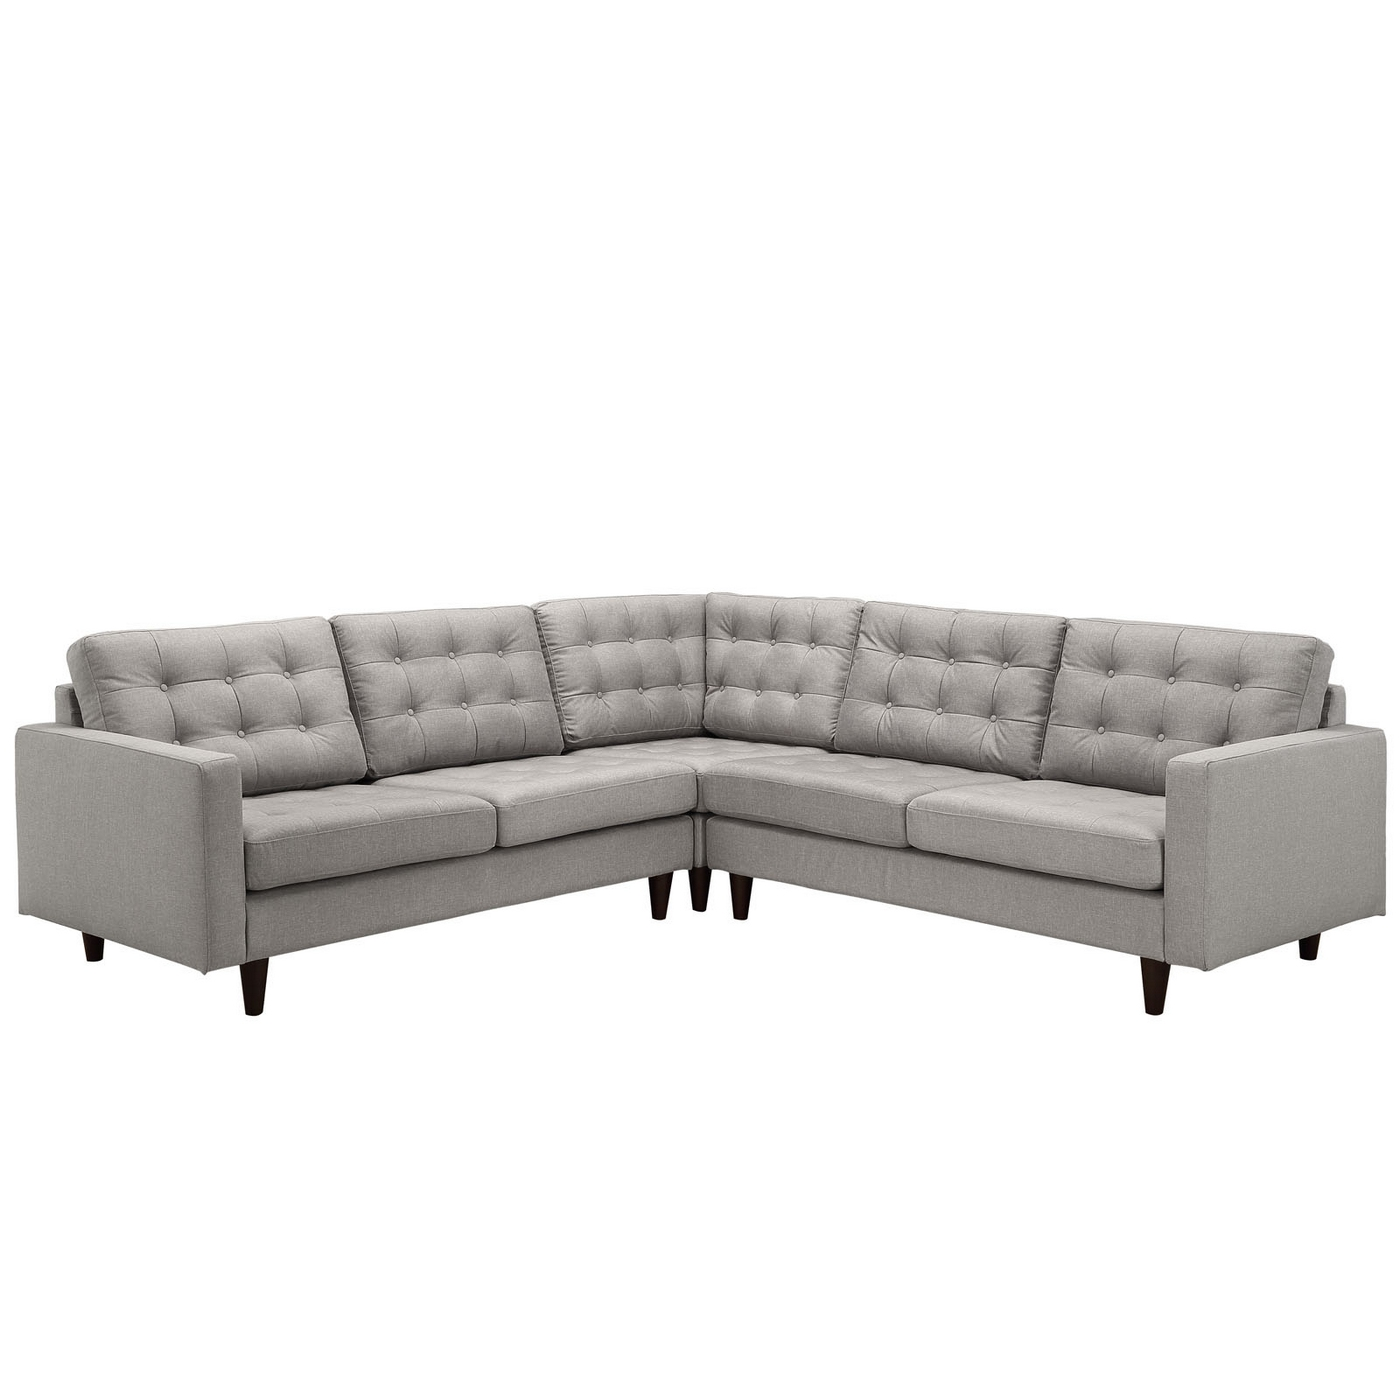 mid century modern light gray sofa avery skladana z materacem empress 3 piece button tufted sectional